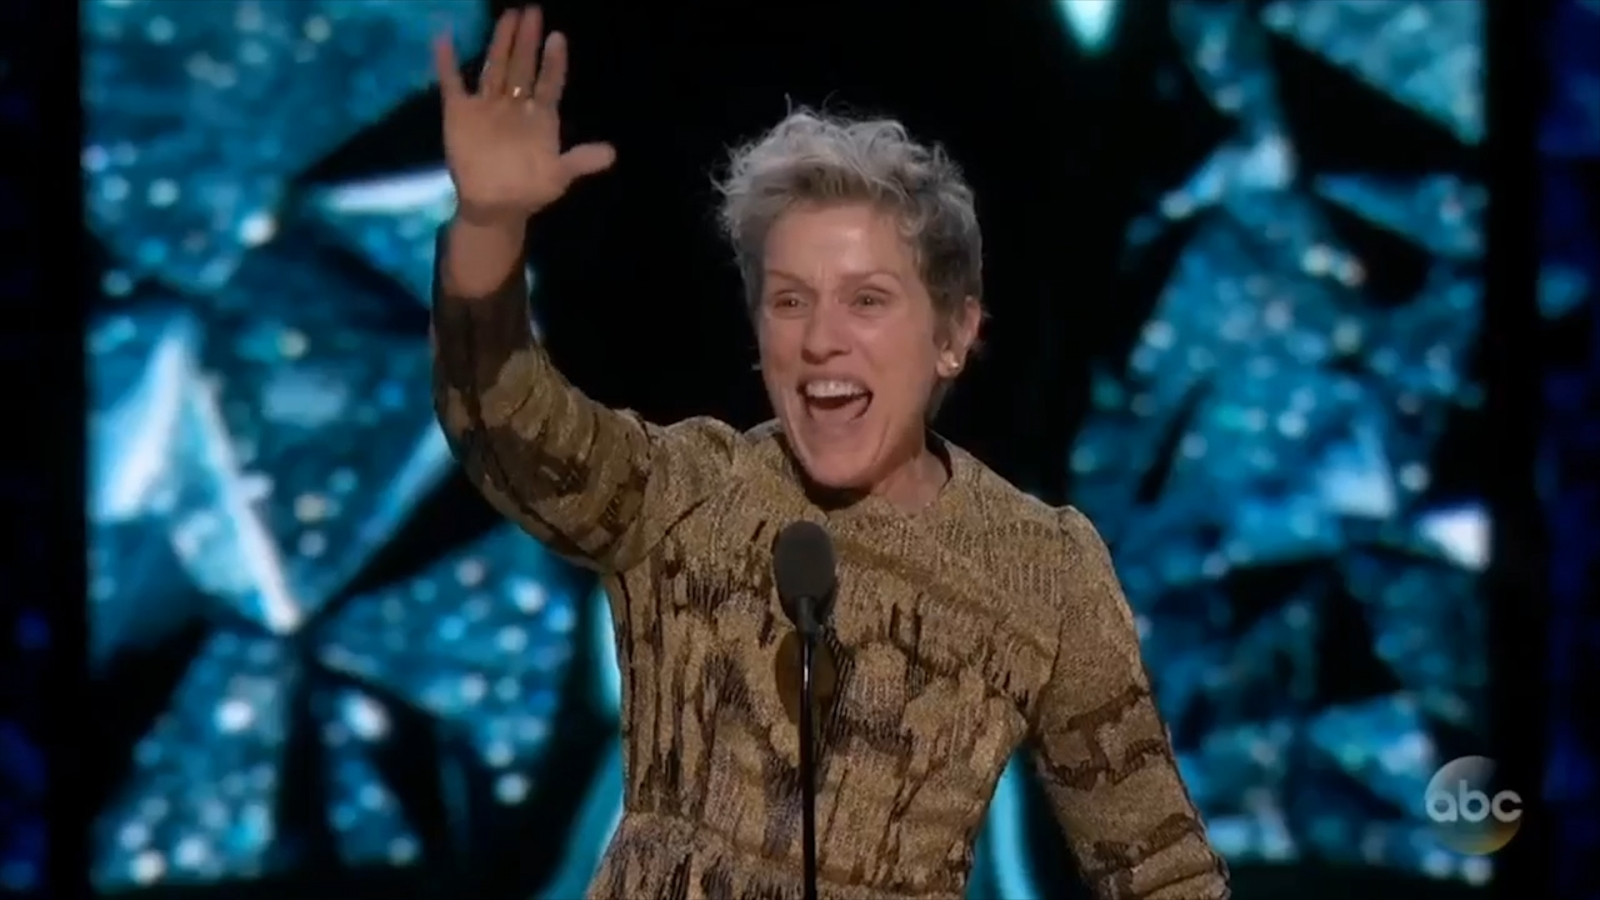 Oscars 2018 Best Actress Winner Frances McDormand Honors Female Filmmakers: 'Two Words, Inclusion Rider'